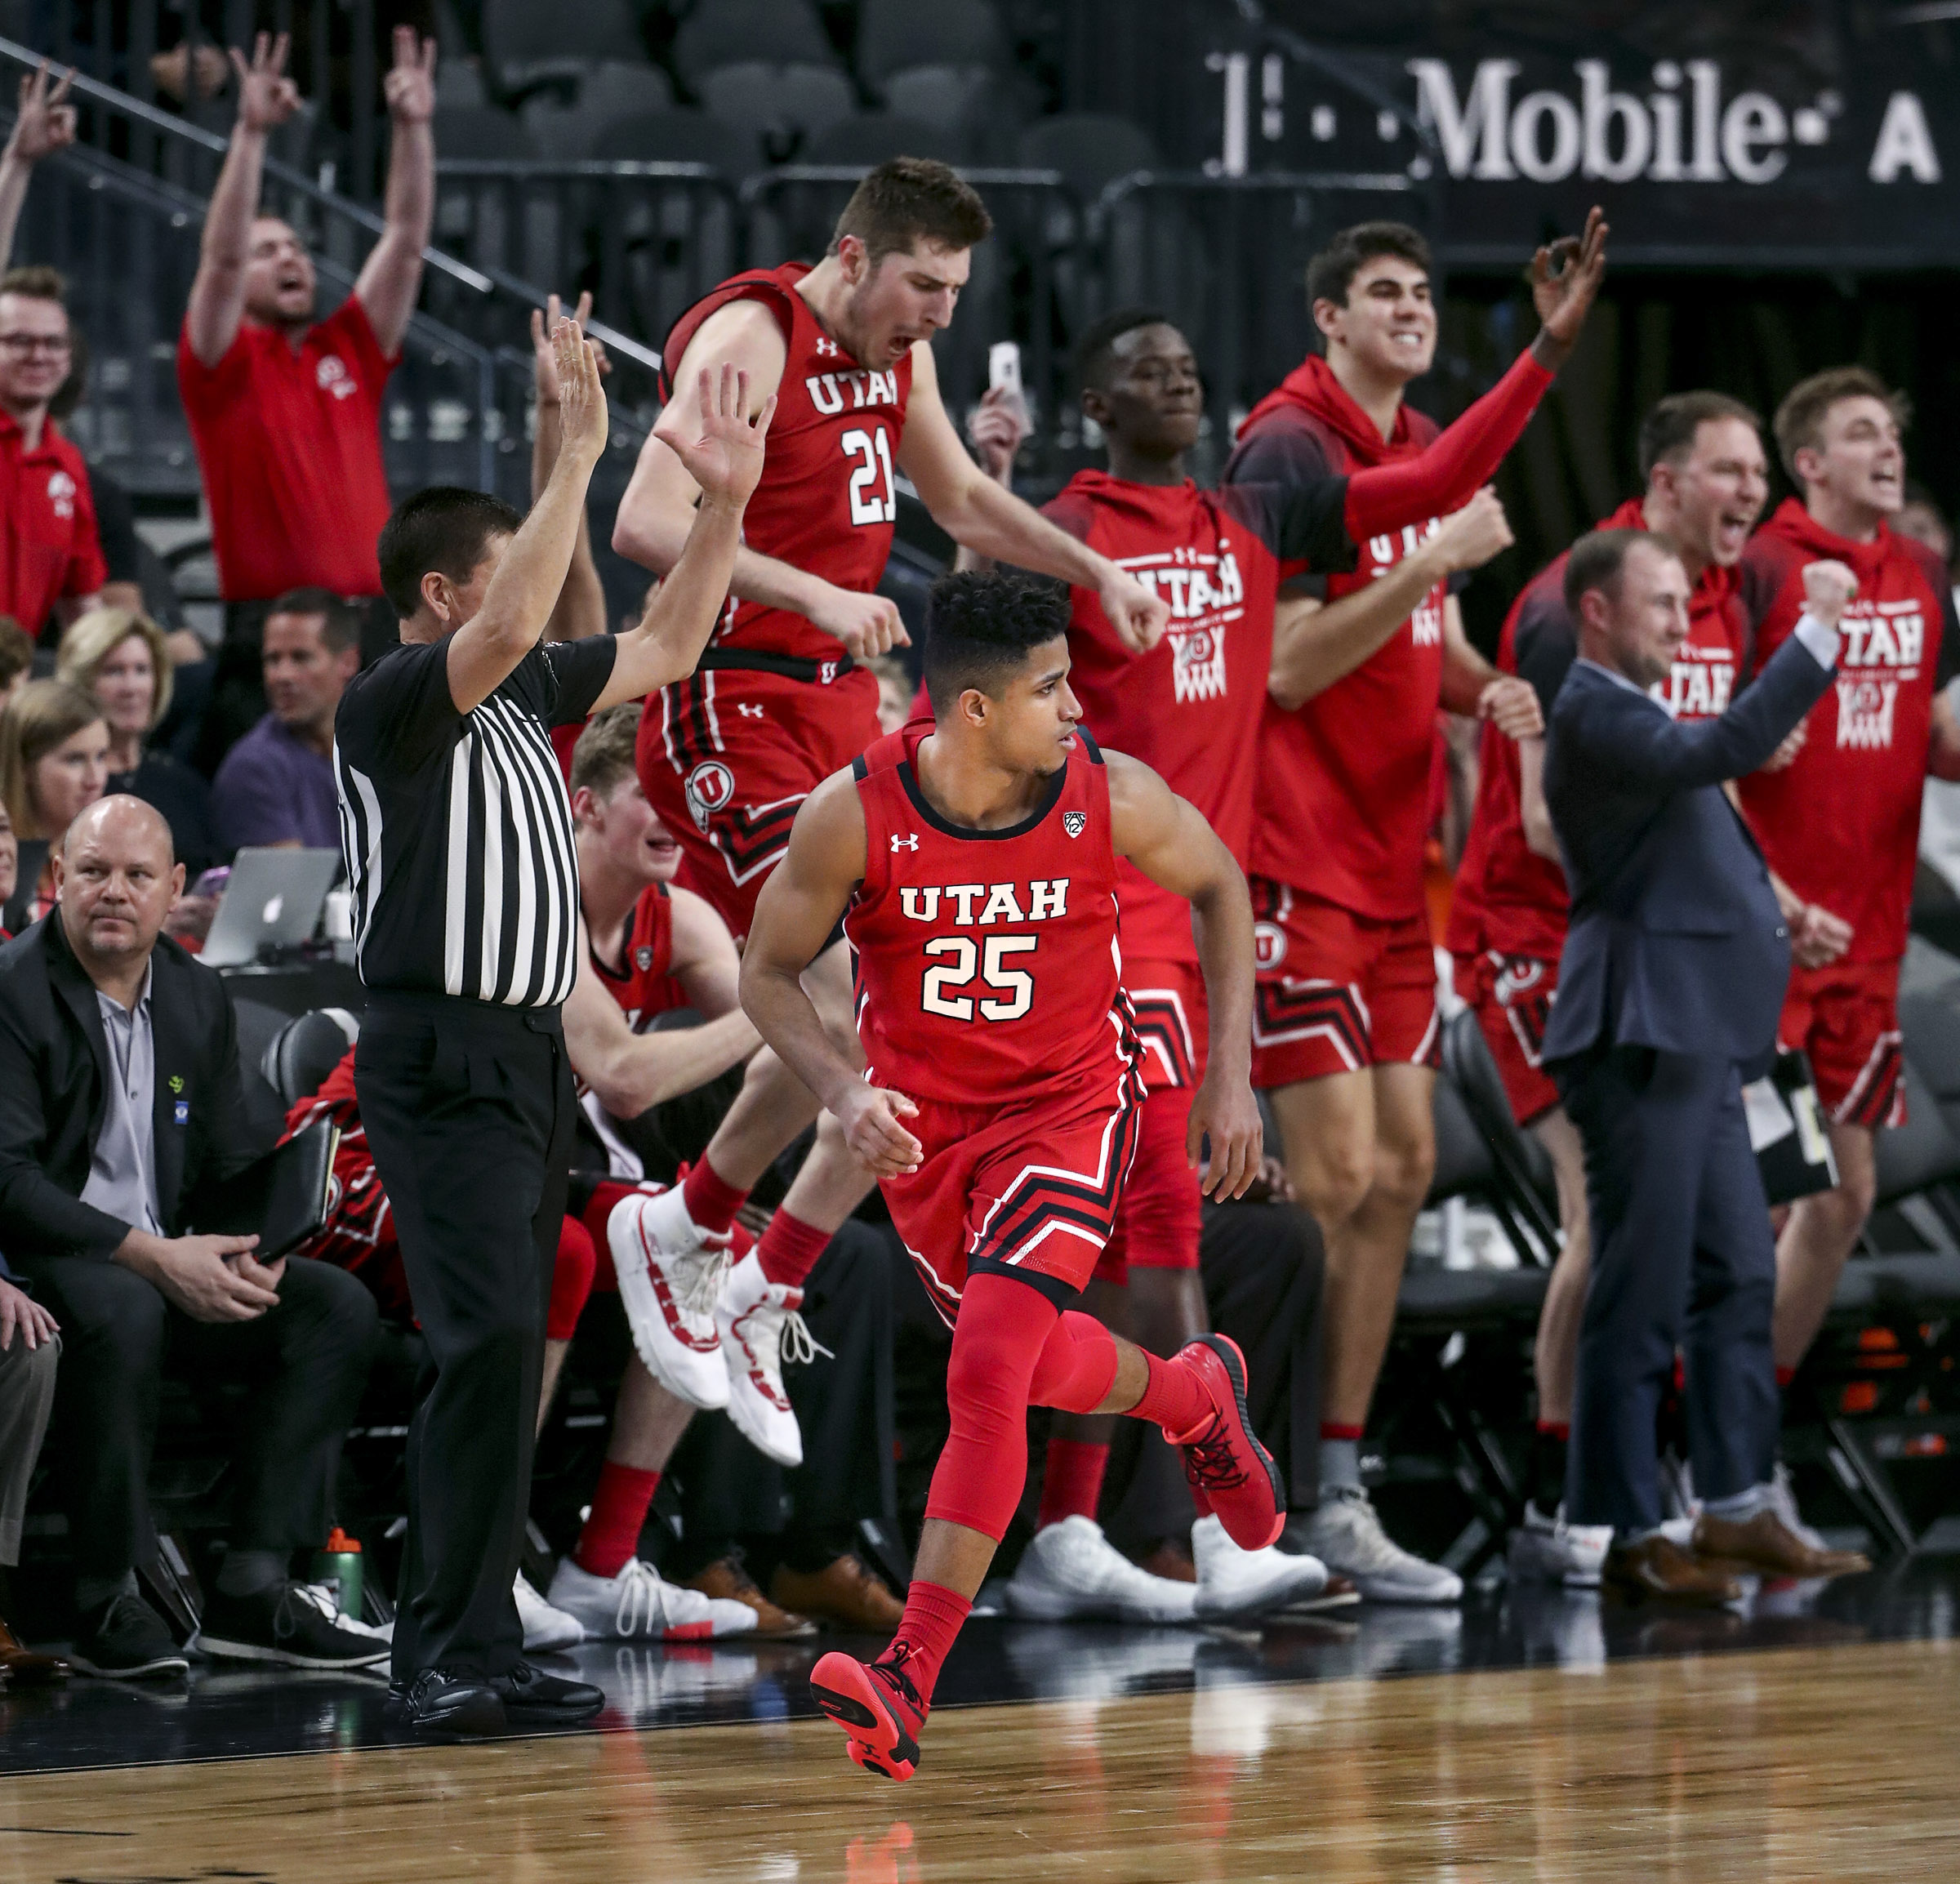 Utah Utes guard Alfonso Plummer (25), center, runs back up the court as the Utah bench celebrates Plummer's eleventh 3-pointer during their game against the Oregon State Beavers during the first round of the Pac-12 men's basketball tournament at T-Mobile Arena in Las Vegas on Wednesday, March 11, 2020.